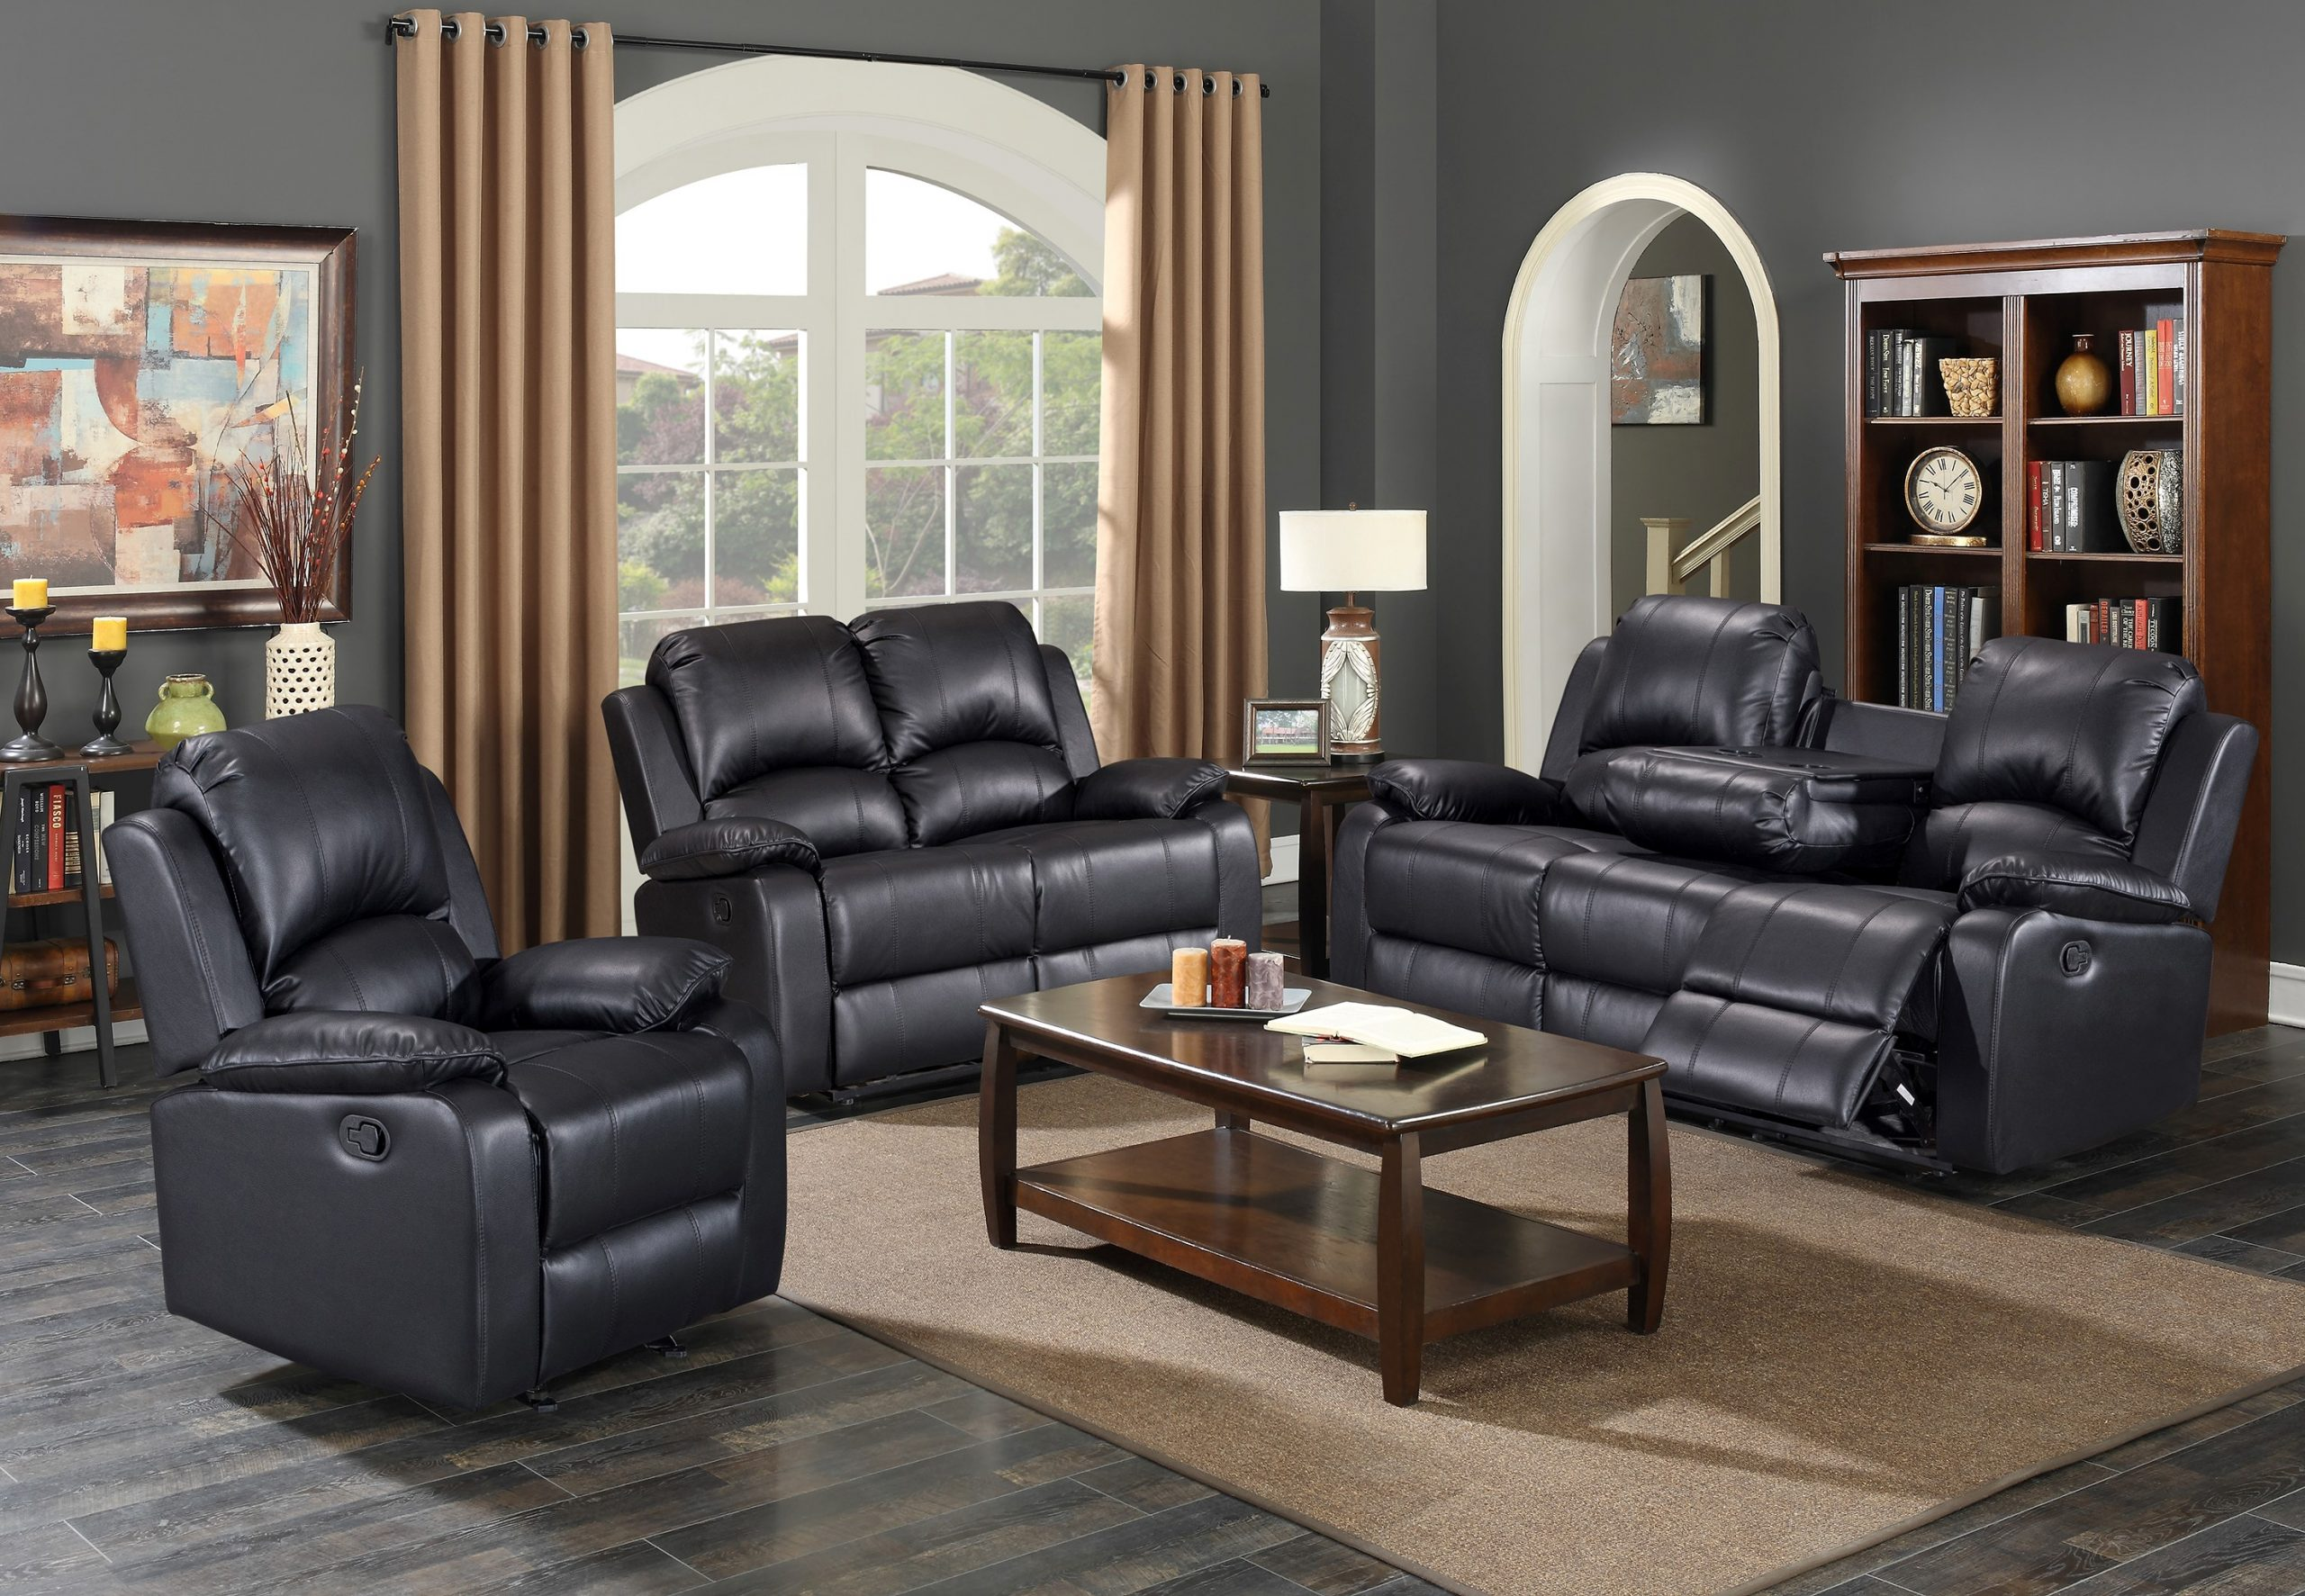 How To Get Cheap Sofas Easily Online